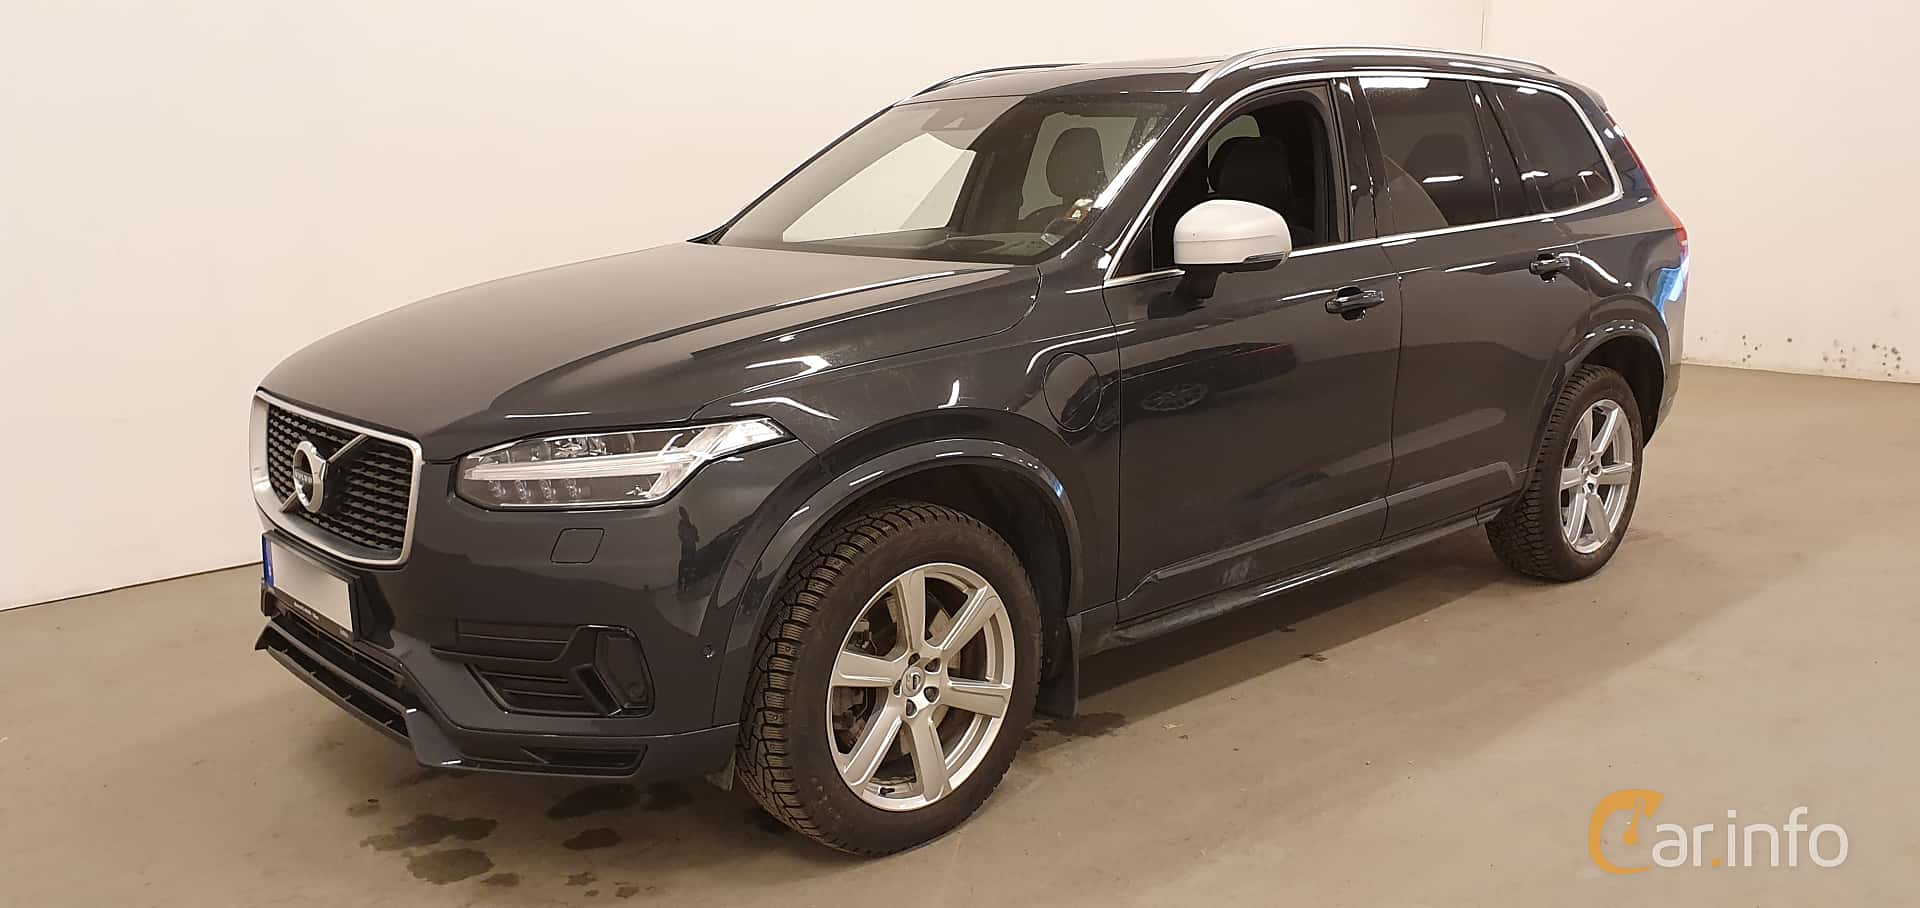 Volvo XC90 T8 AWD Geartronic, 407hp, 2018